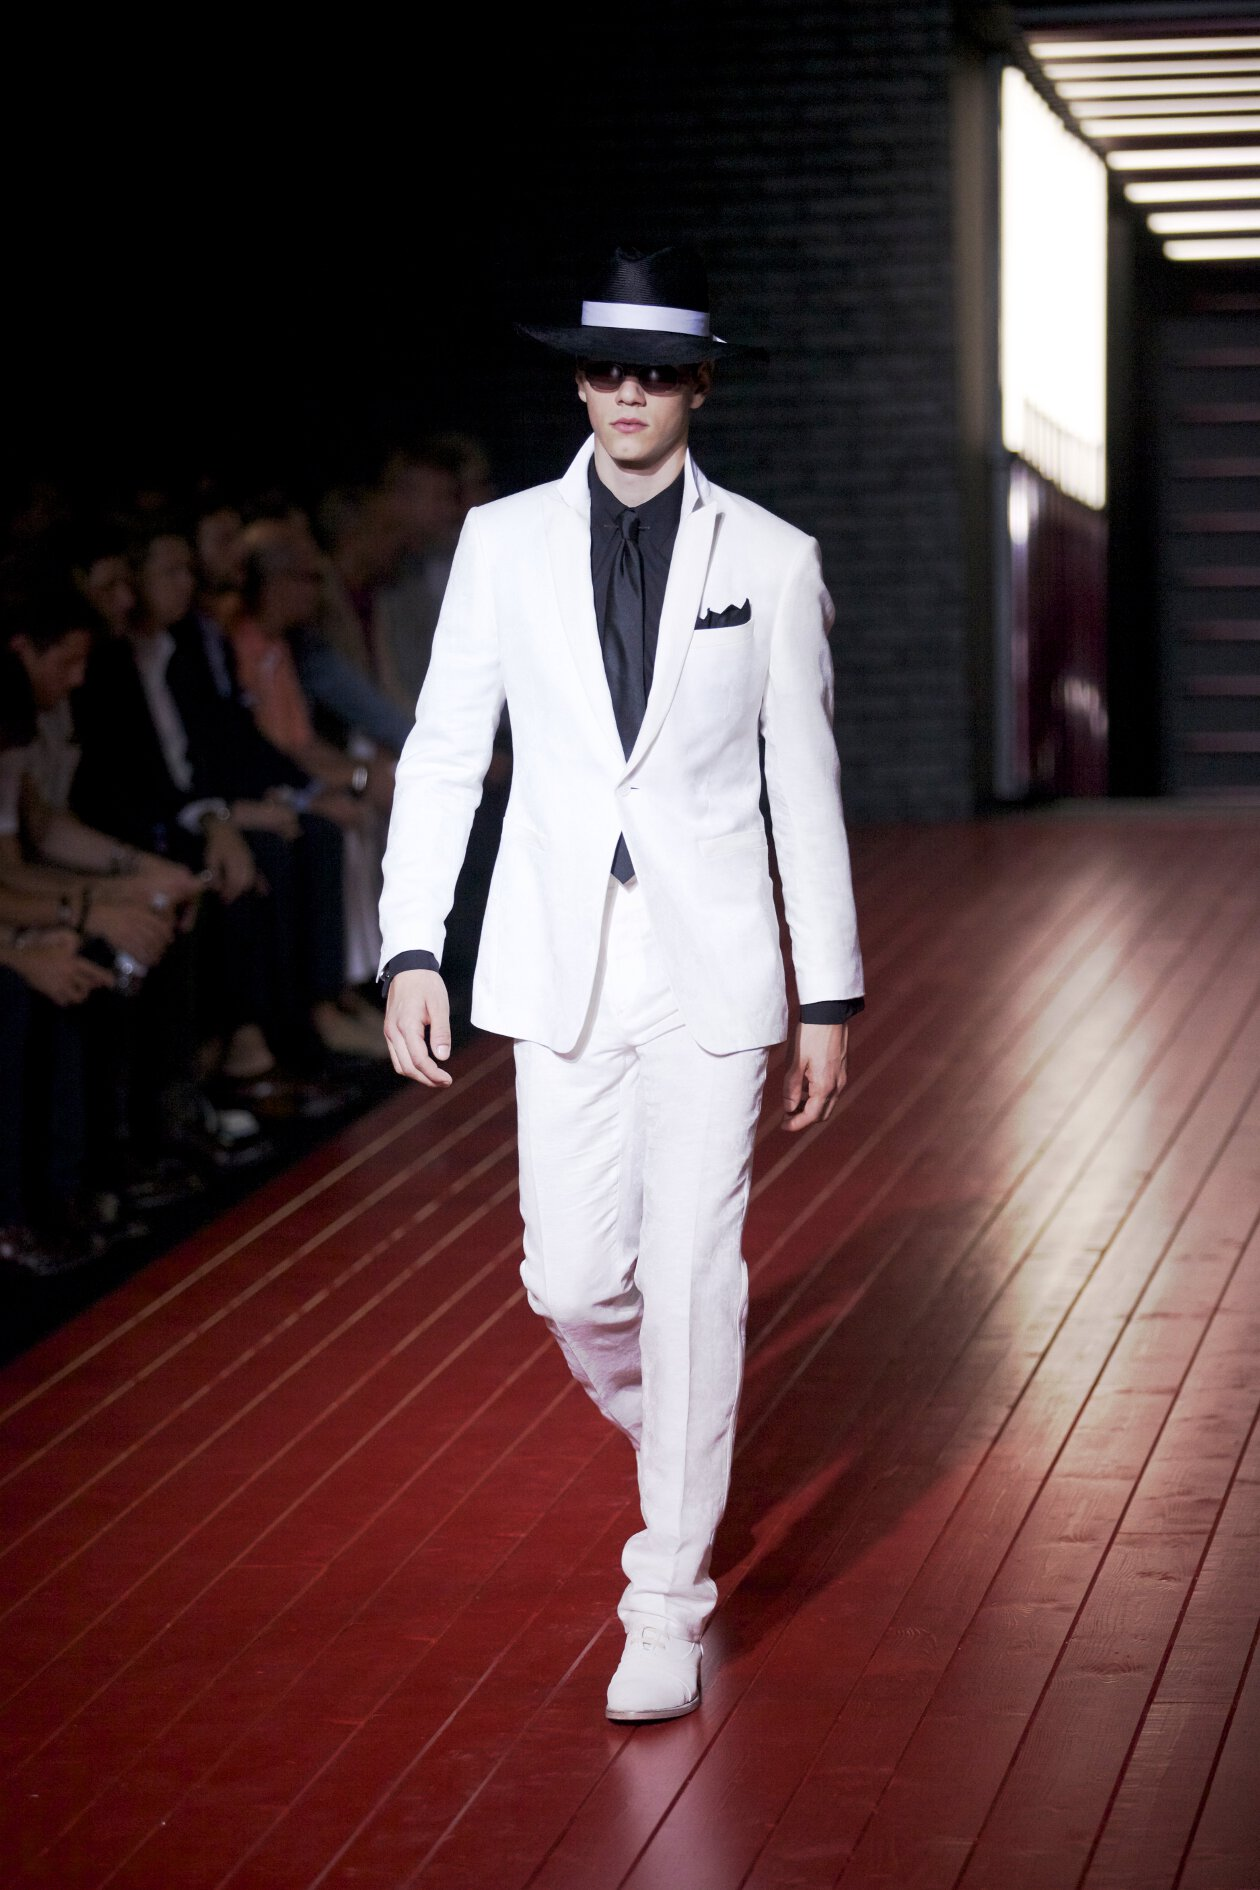 John Varvatos Summer Trends 2013